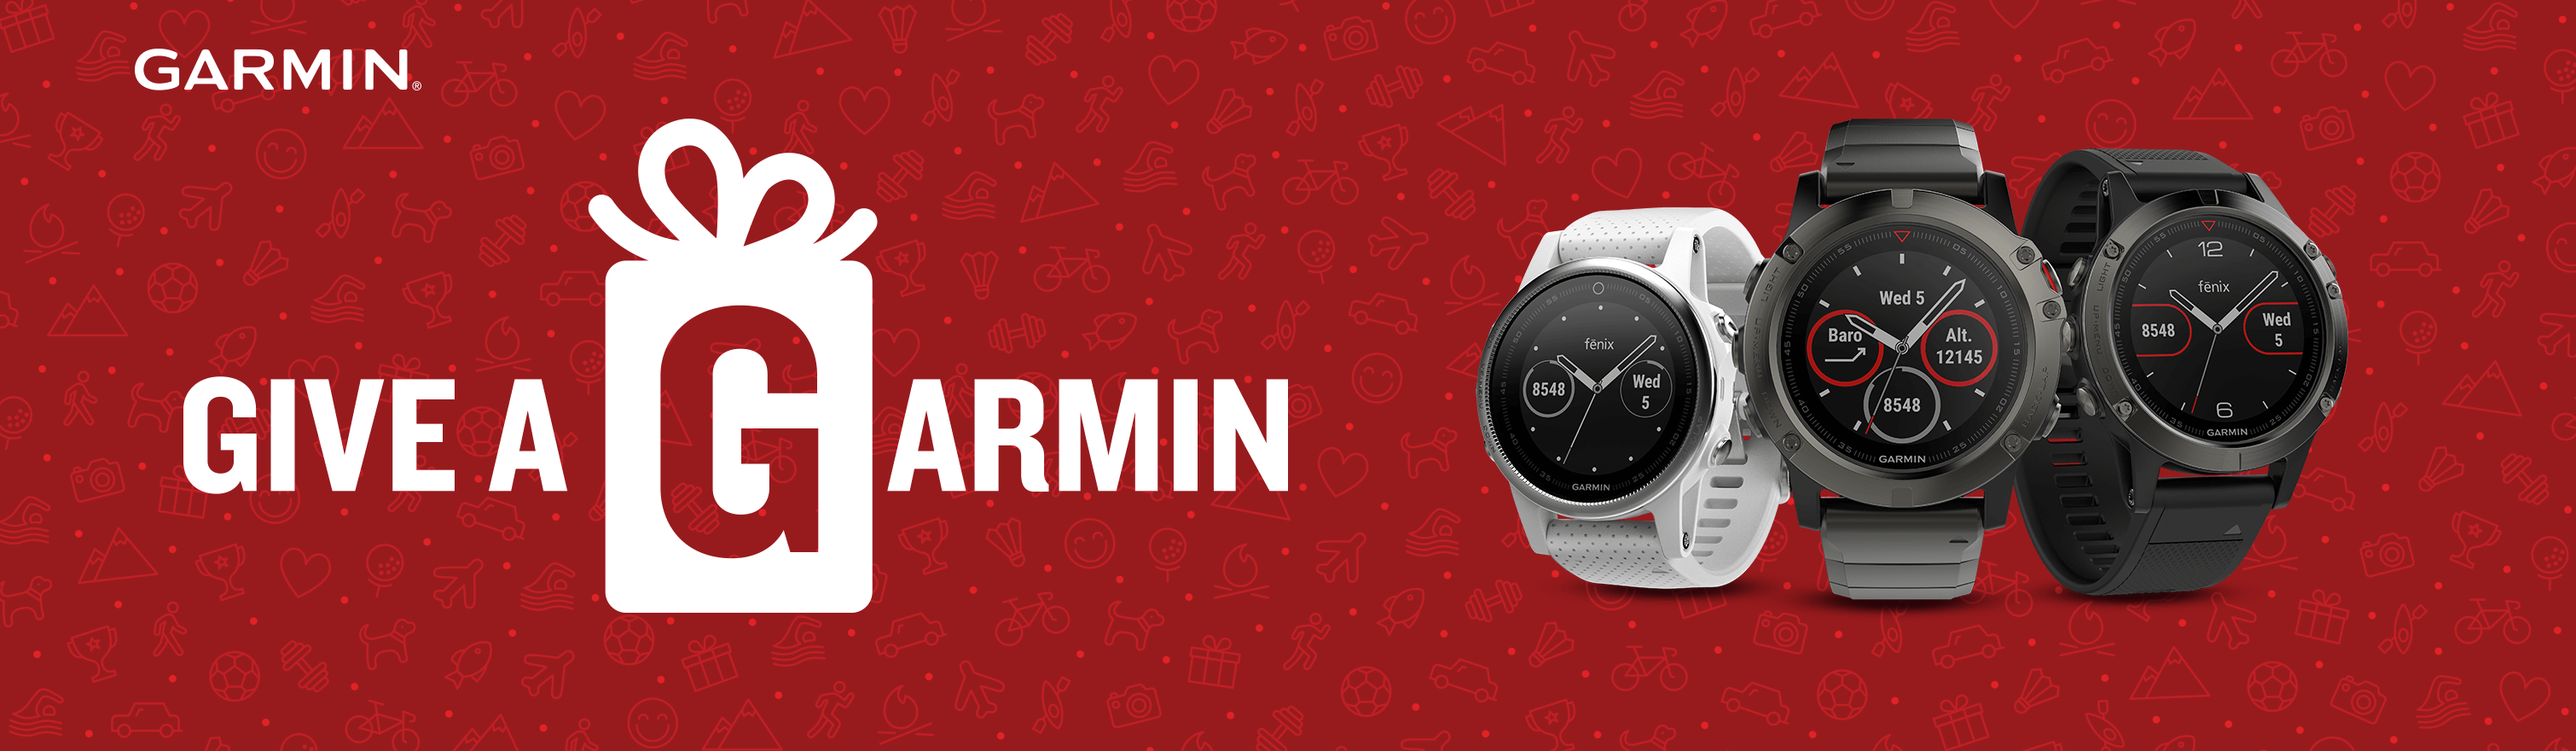 Give a Garmin Holiday Sale Running Watch